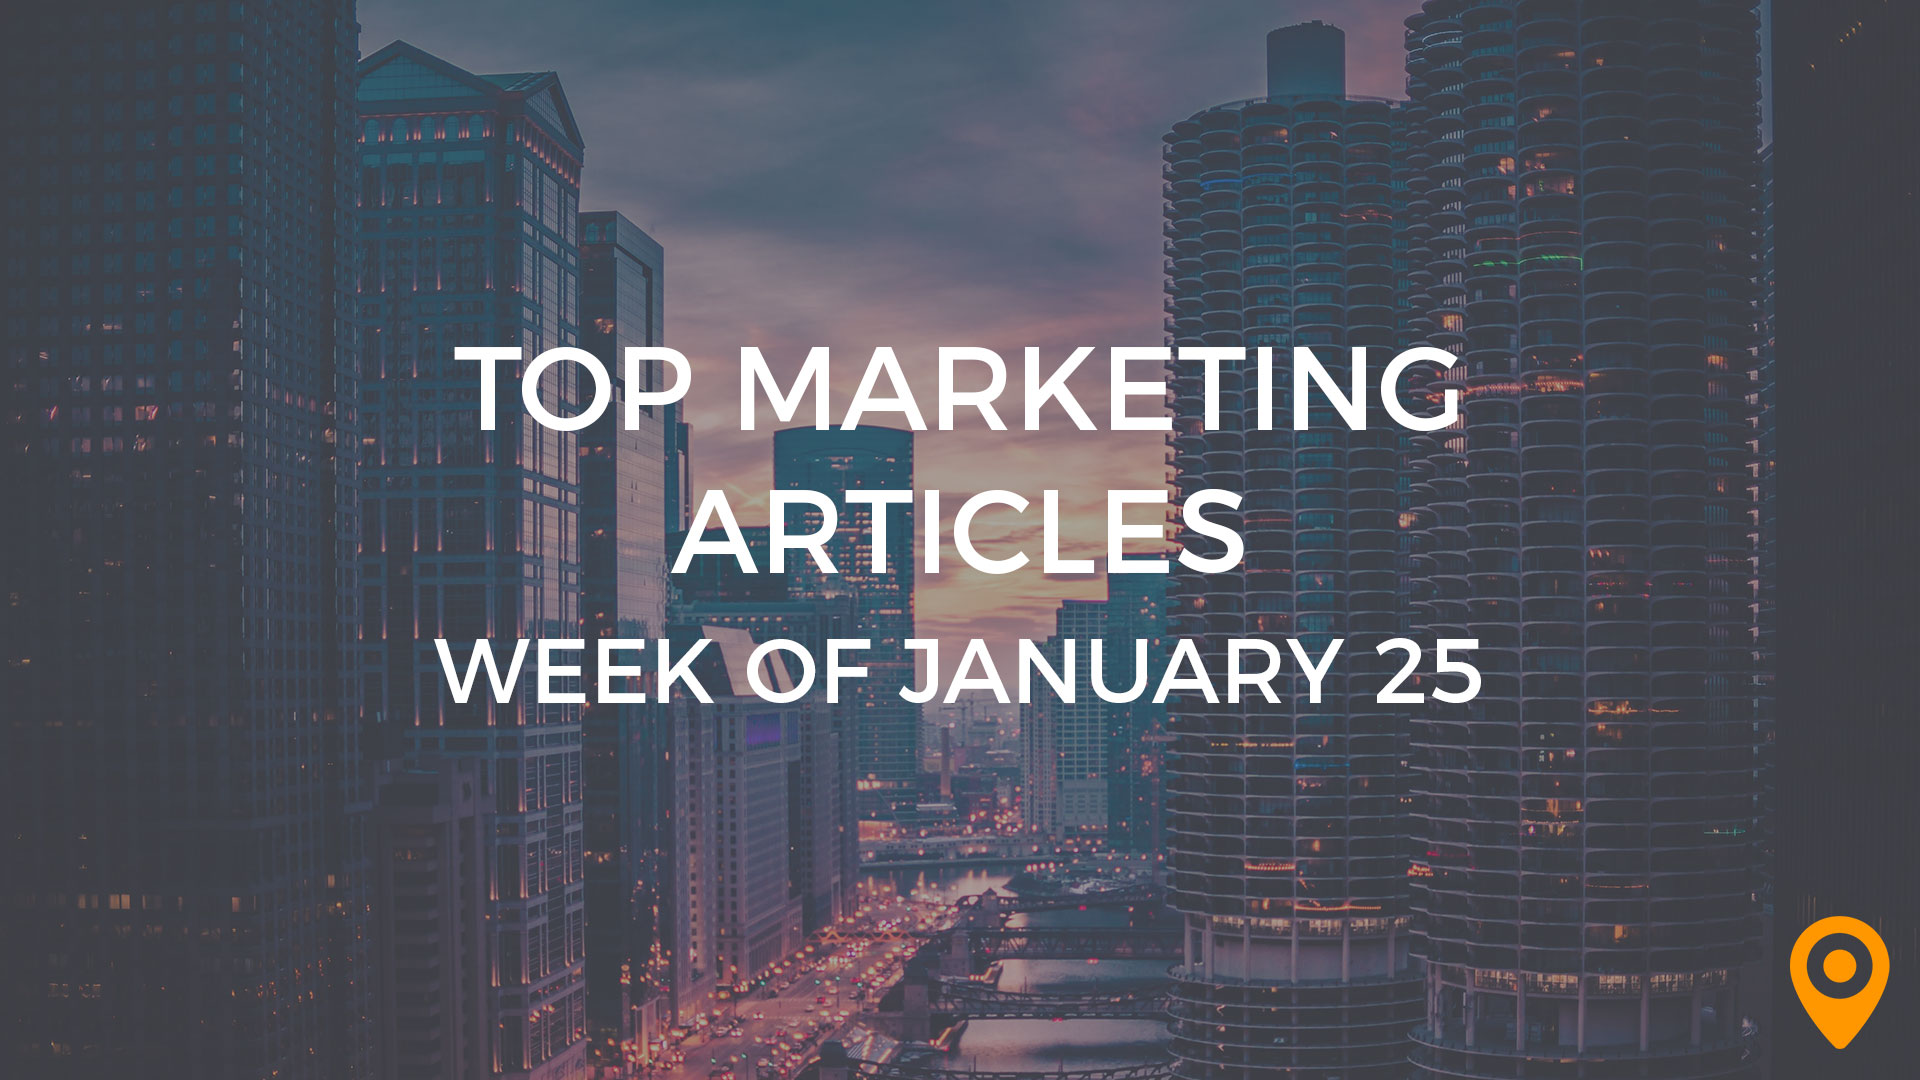 Top Marketing Articles Week of Jan 25